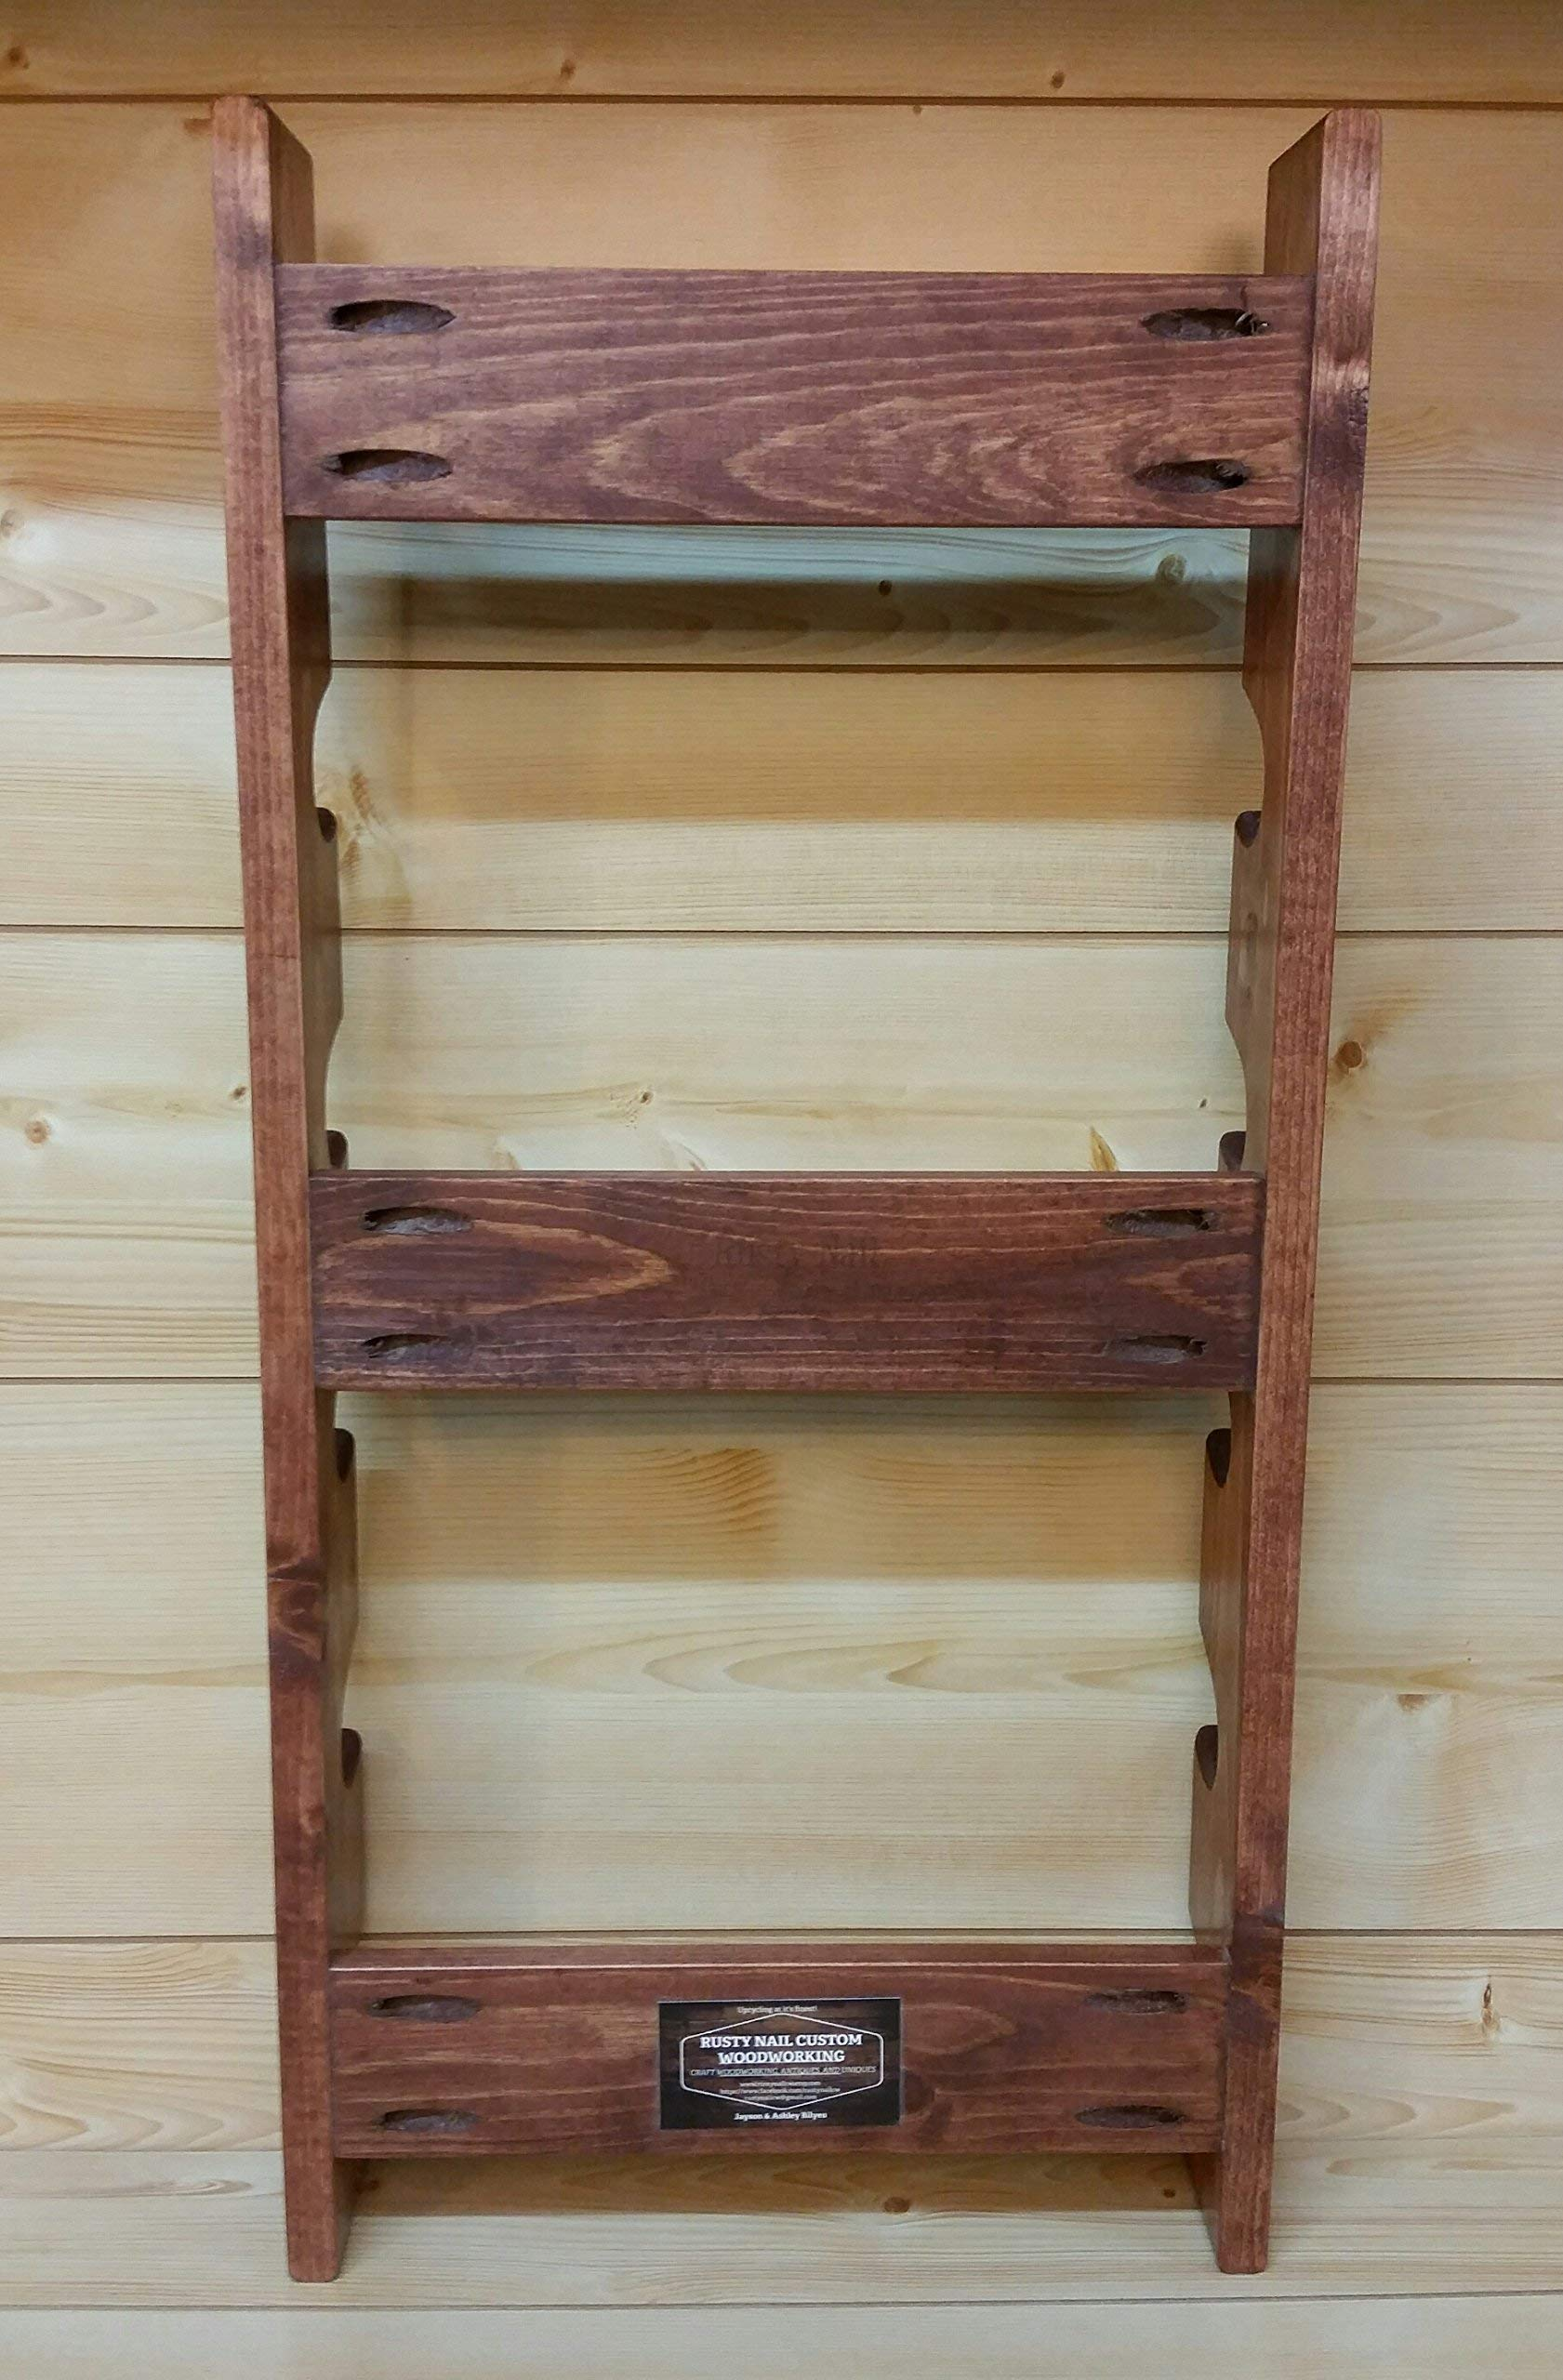 Rolling Pin Rack with Six Slots - Multiple Rolling Pin Rack - Rolling Pin Holder - Rolling Pin Storage - Rolling Pin Rack for 6 by Rusty Nail Custom Woodworking (Image #7)